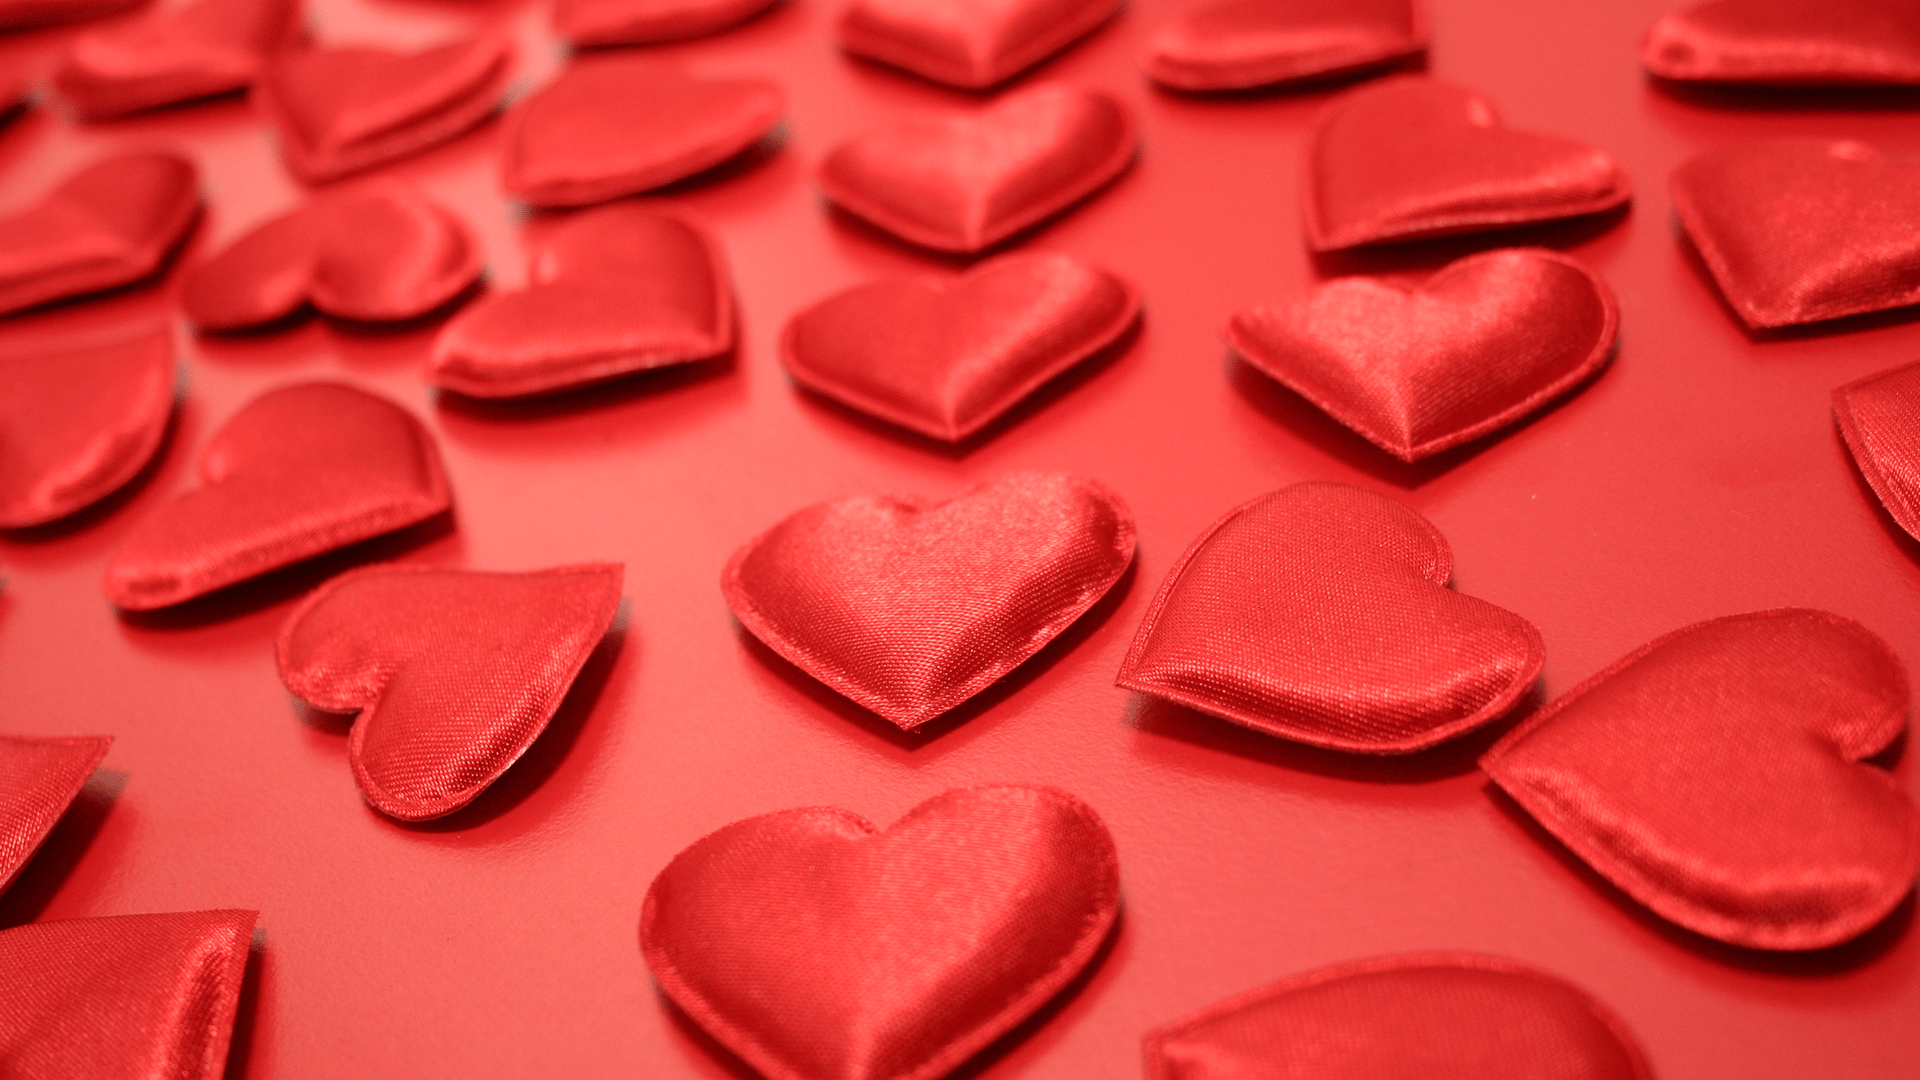 Hearts On Red BG_1549855051638.png.jpg